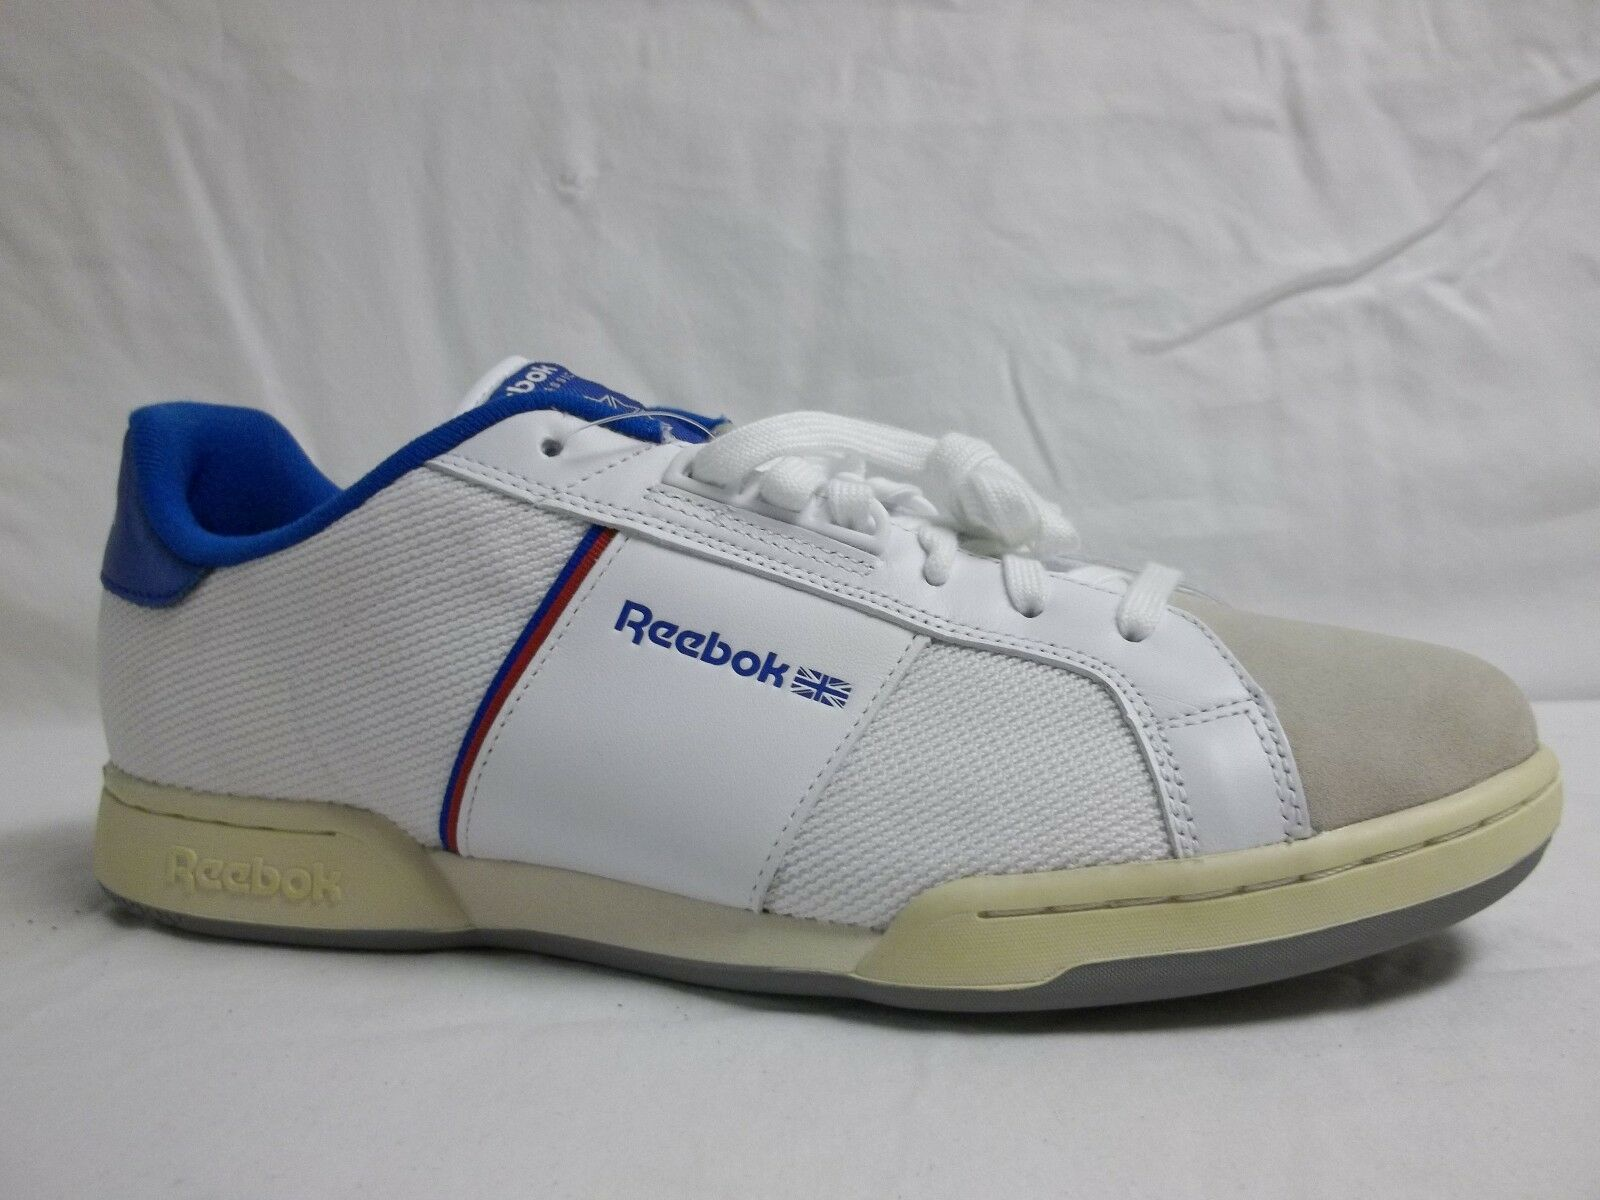 Reebok Siz 12 M NPC Weiß Blau Leather Low Athletic Turnschuhe New Mens schuhe NWOB